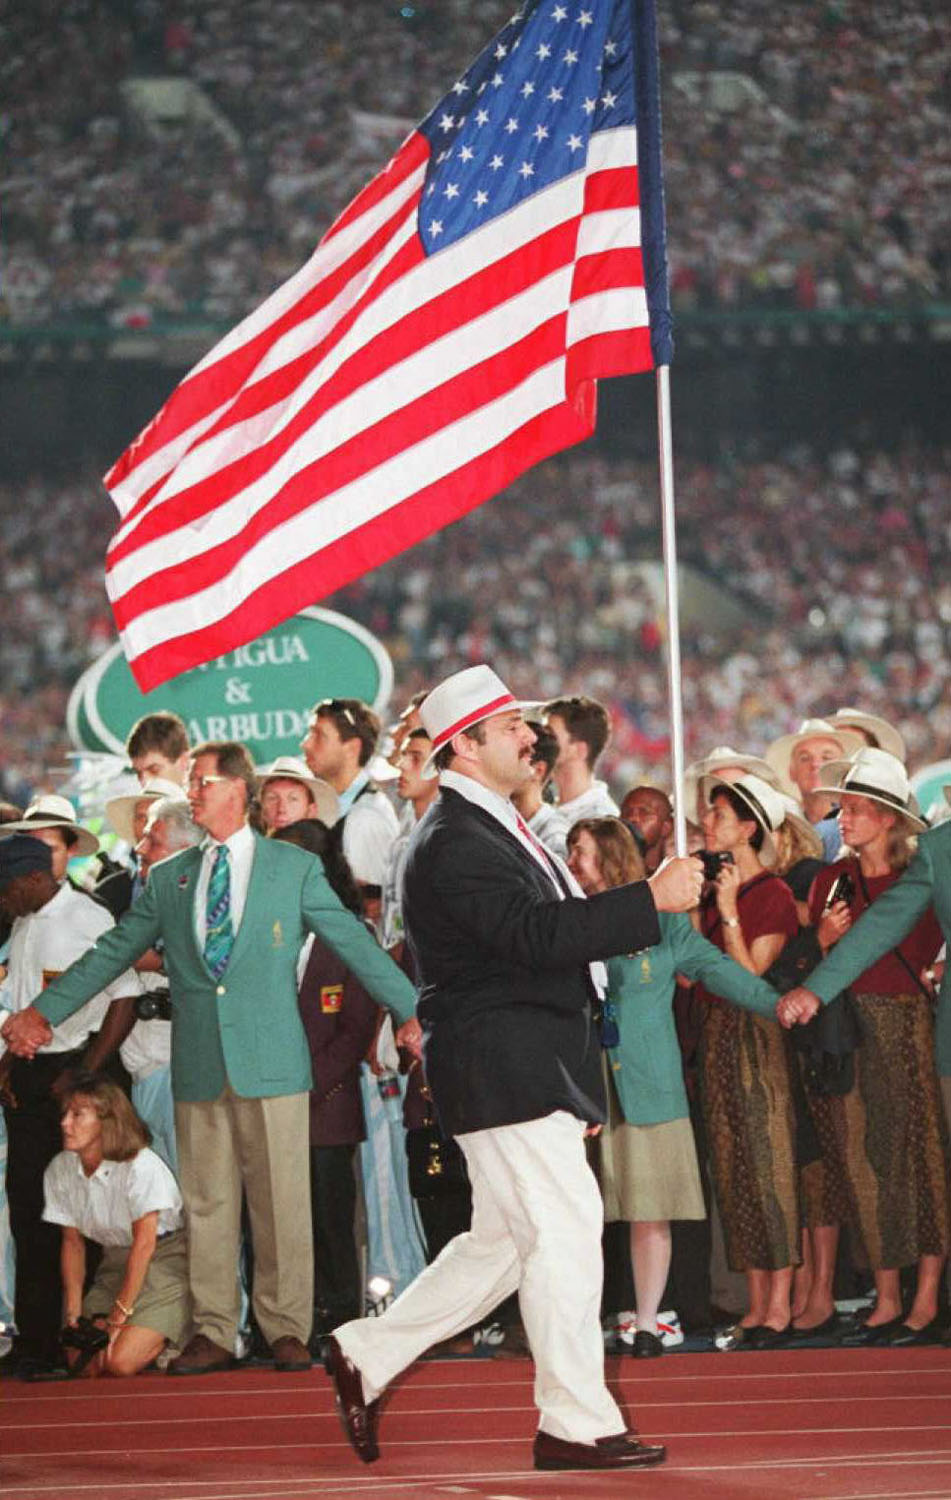 US Olympic wrestler Bruce Baumgartner carries the American flag during the opening ceremony at the Olympic Stadium in Atlanta in 1996.